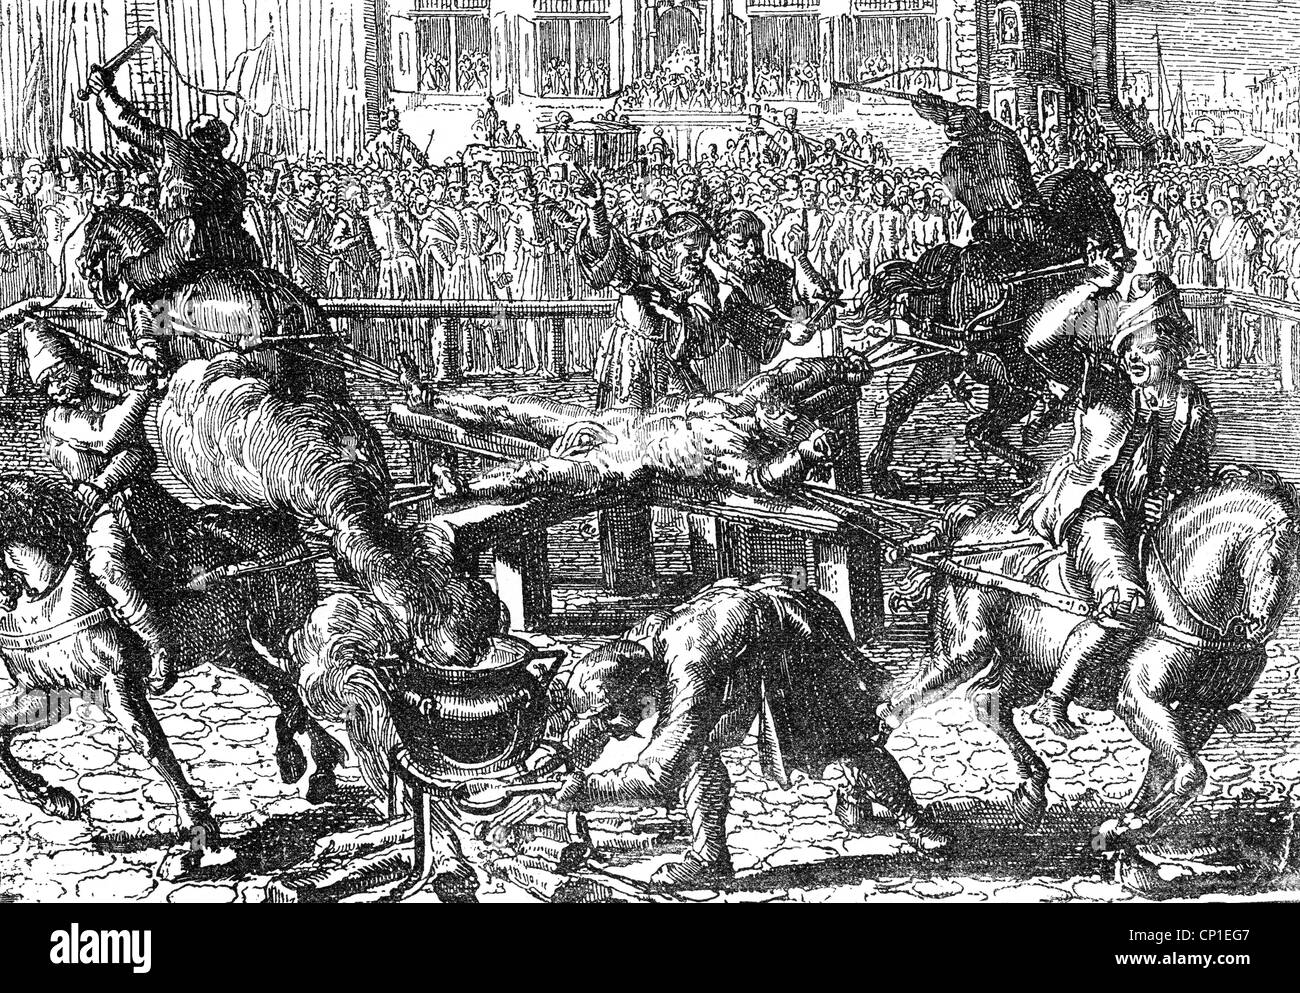 Ravaillac, Francois, 1578 - 27.5.1610, French murderer, death, execution at  Place de Greve, Paris, copper engraving, 17th century, Artist's Copyright  has ...